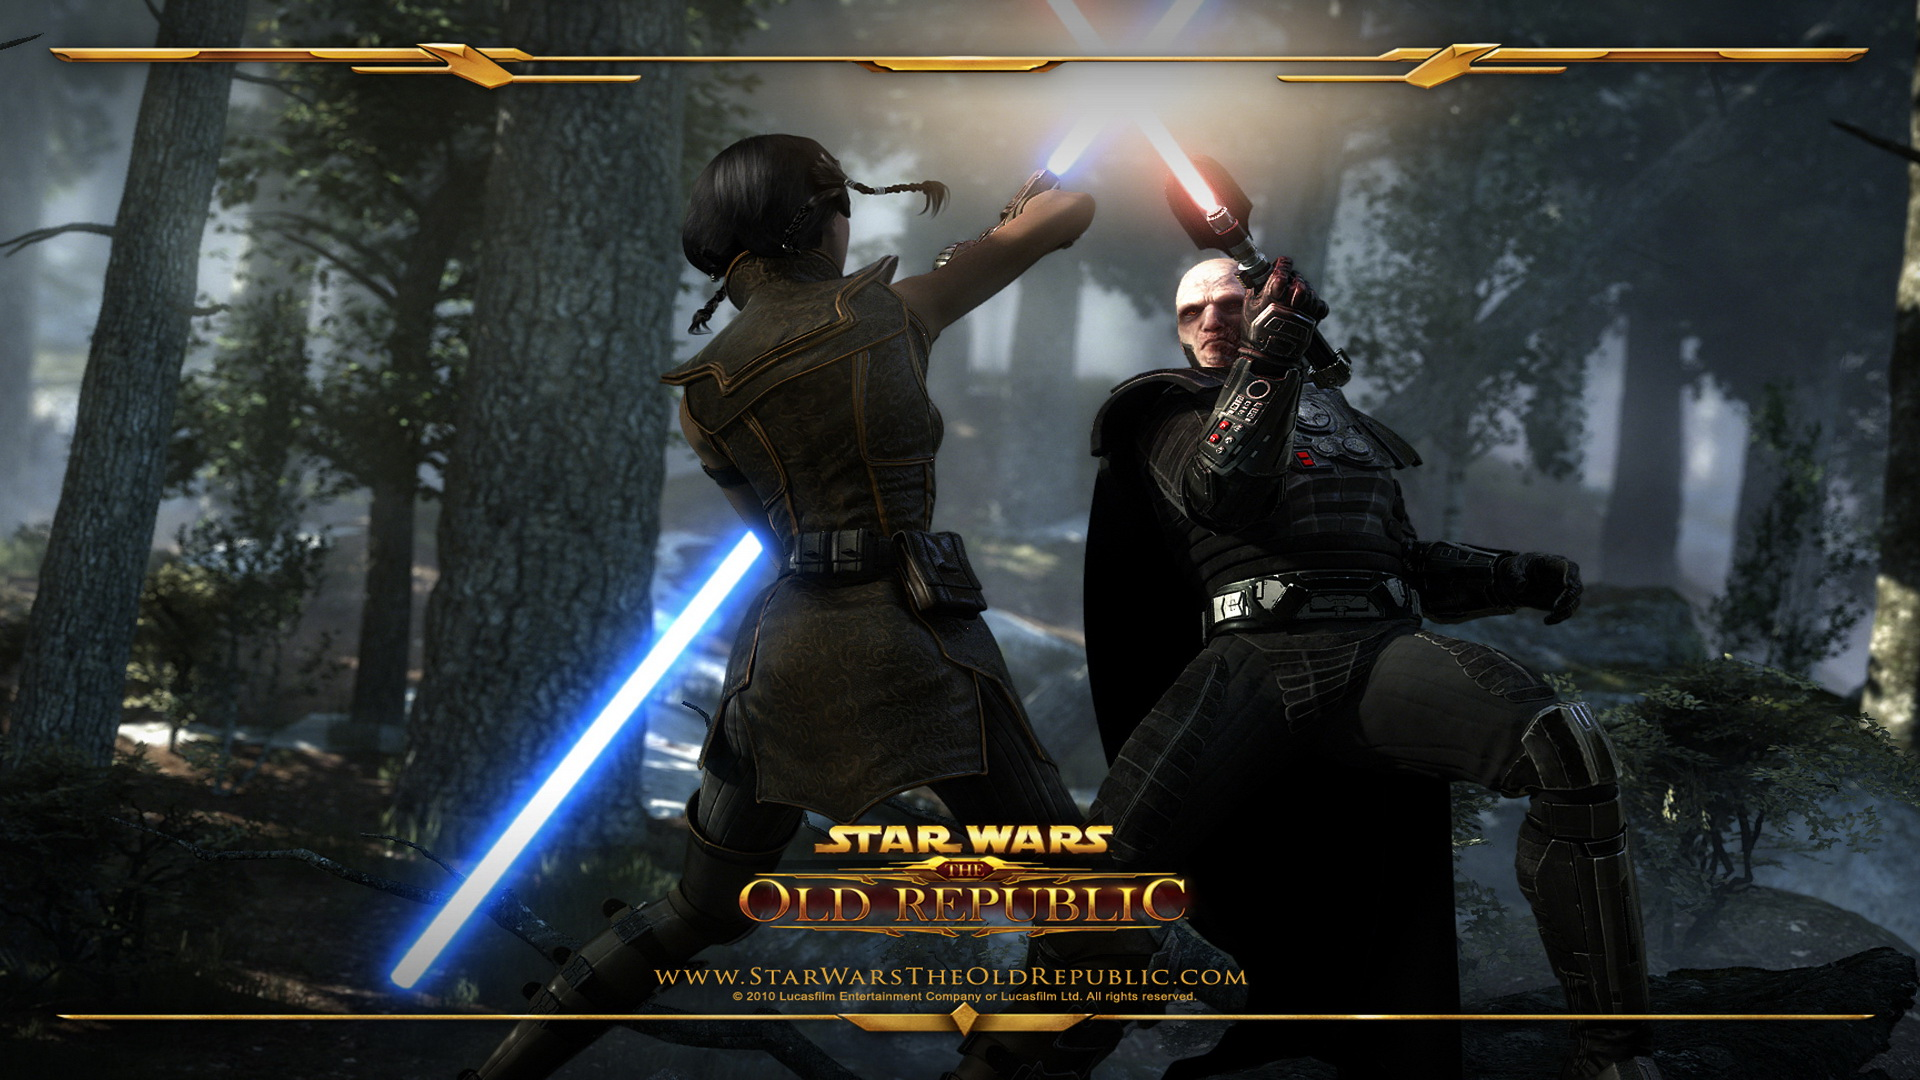 wars the old republic hope wallpaper 2 Wallpaper Game HD Wallpapers 1920x1080